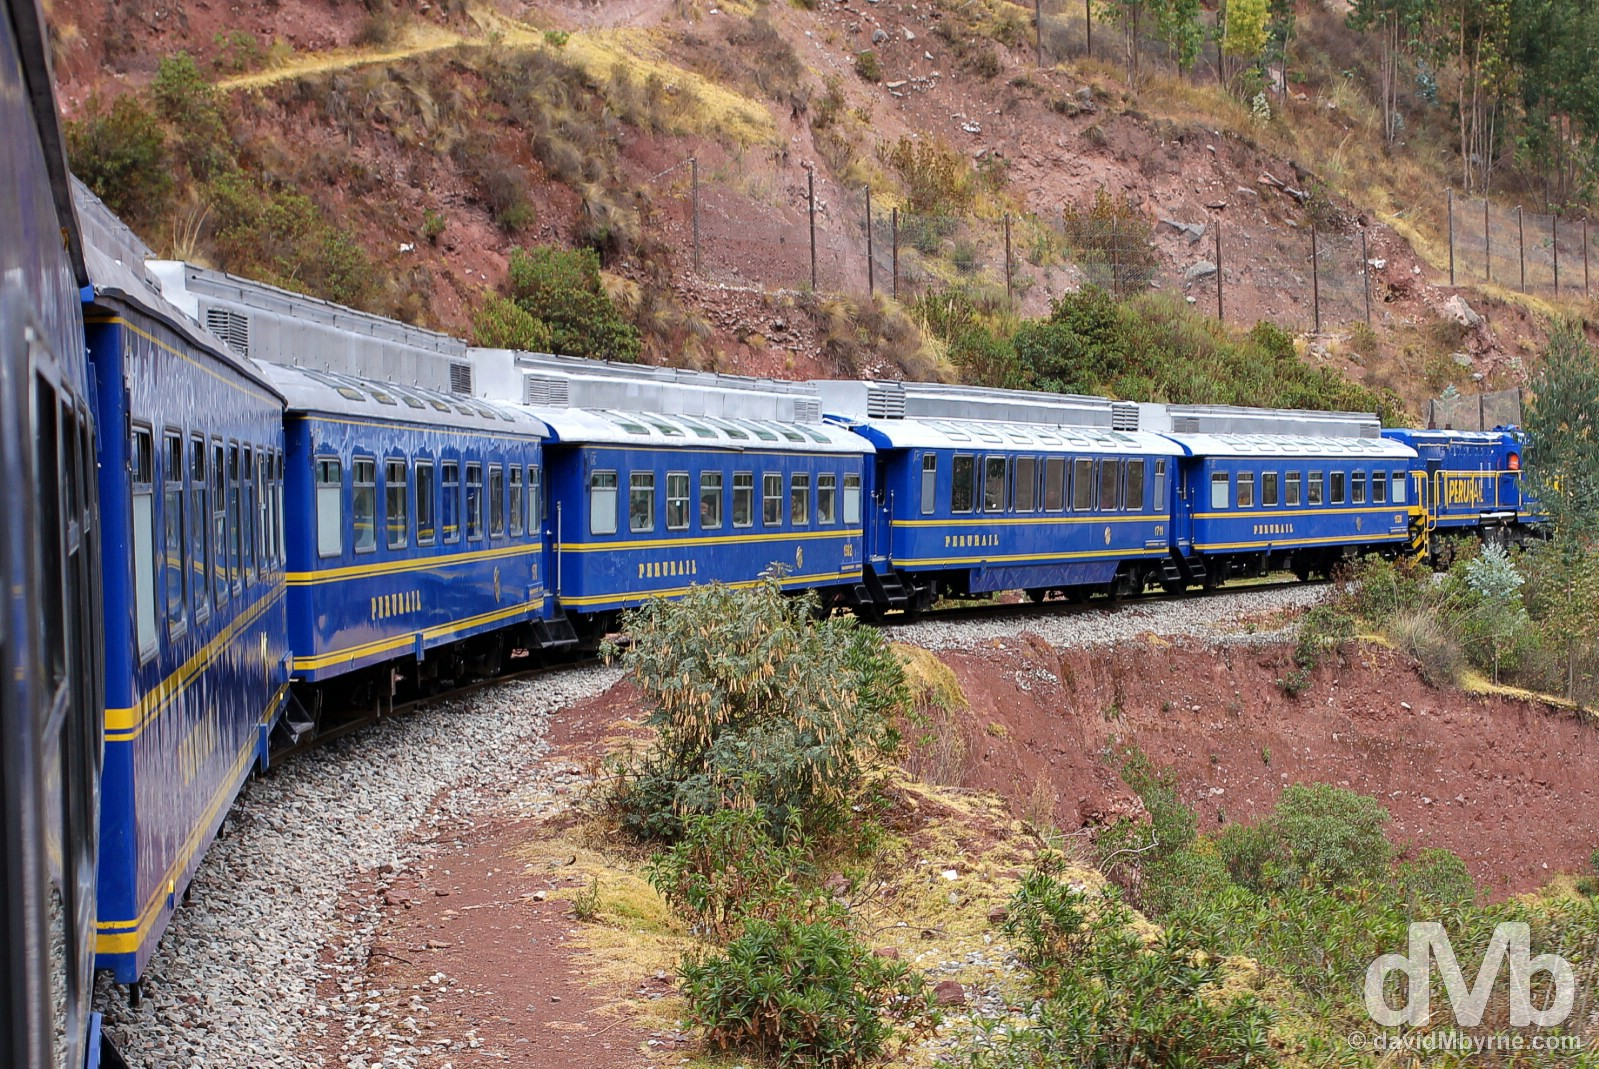 Peru Rail's 07:42 Expedition service from Cusco to Machu Picchu Peublo/Aguas Calientes, Peru. August 14, 2015.